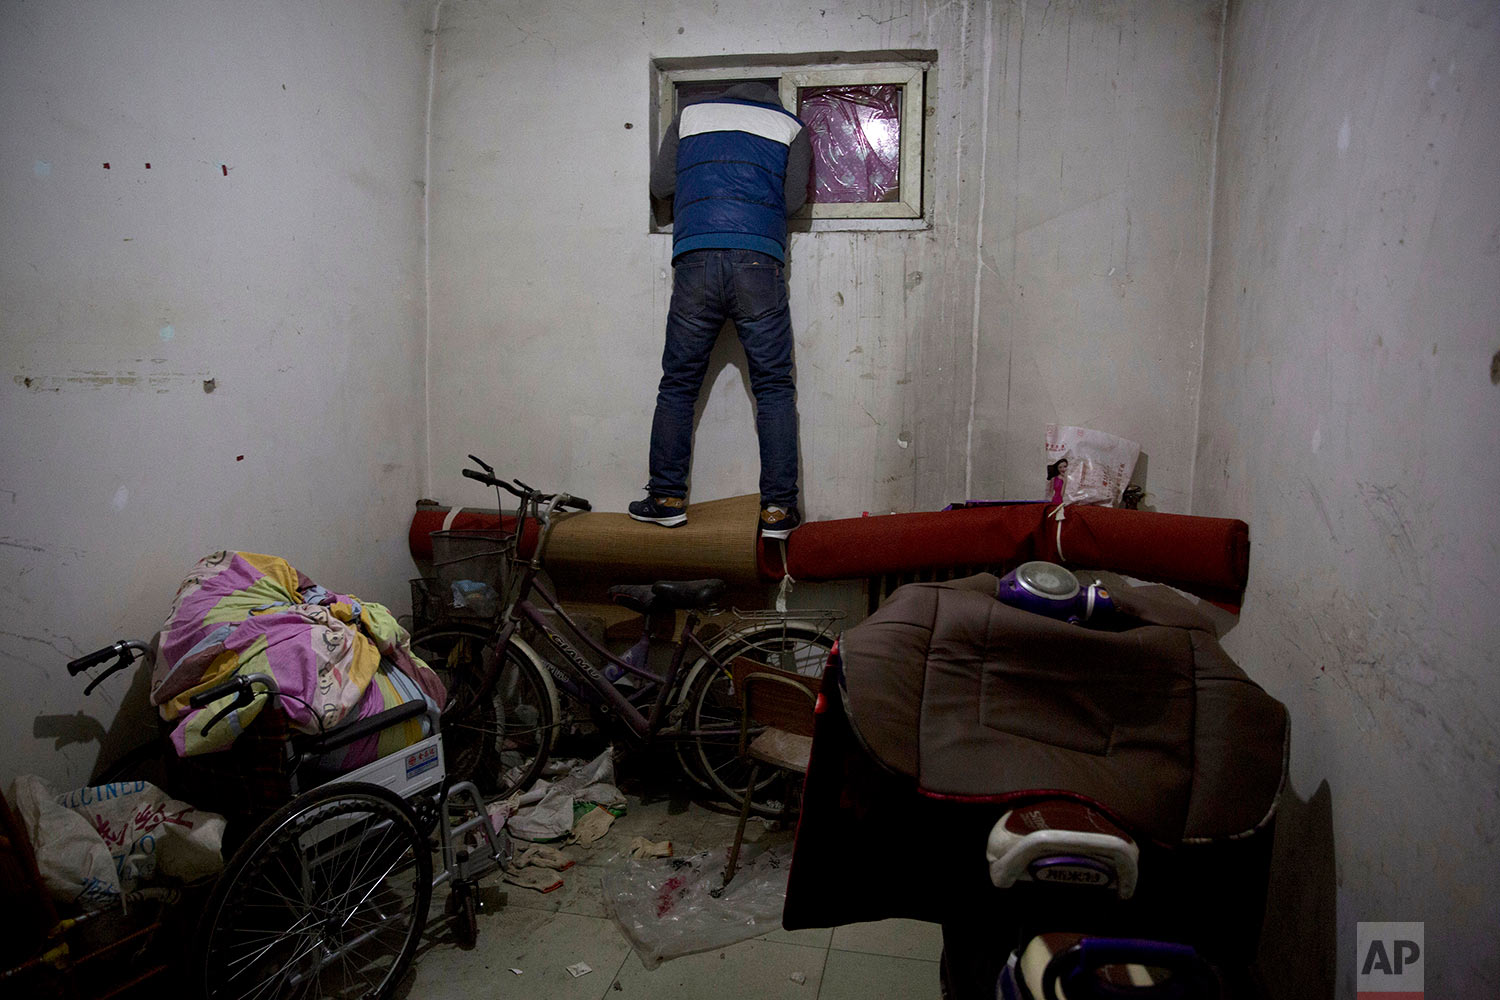 In this Nov. 27, 2017, photo, a man looks outside the window of an apartment where migrant workers stayed in the outskirts of Beijing. Authorities in Beijing have been evicting domestic migrant workers from the capital in droves, triggering a public outcry over the harsh treatment of people the city depends on to build their skyscrapers, care for their children and take on other lowly-paid work. (AP Photo/Ng Han Guan)